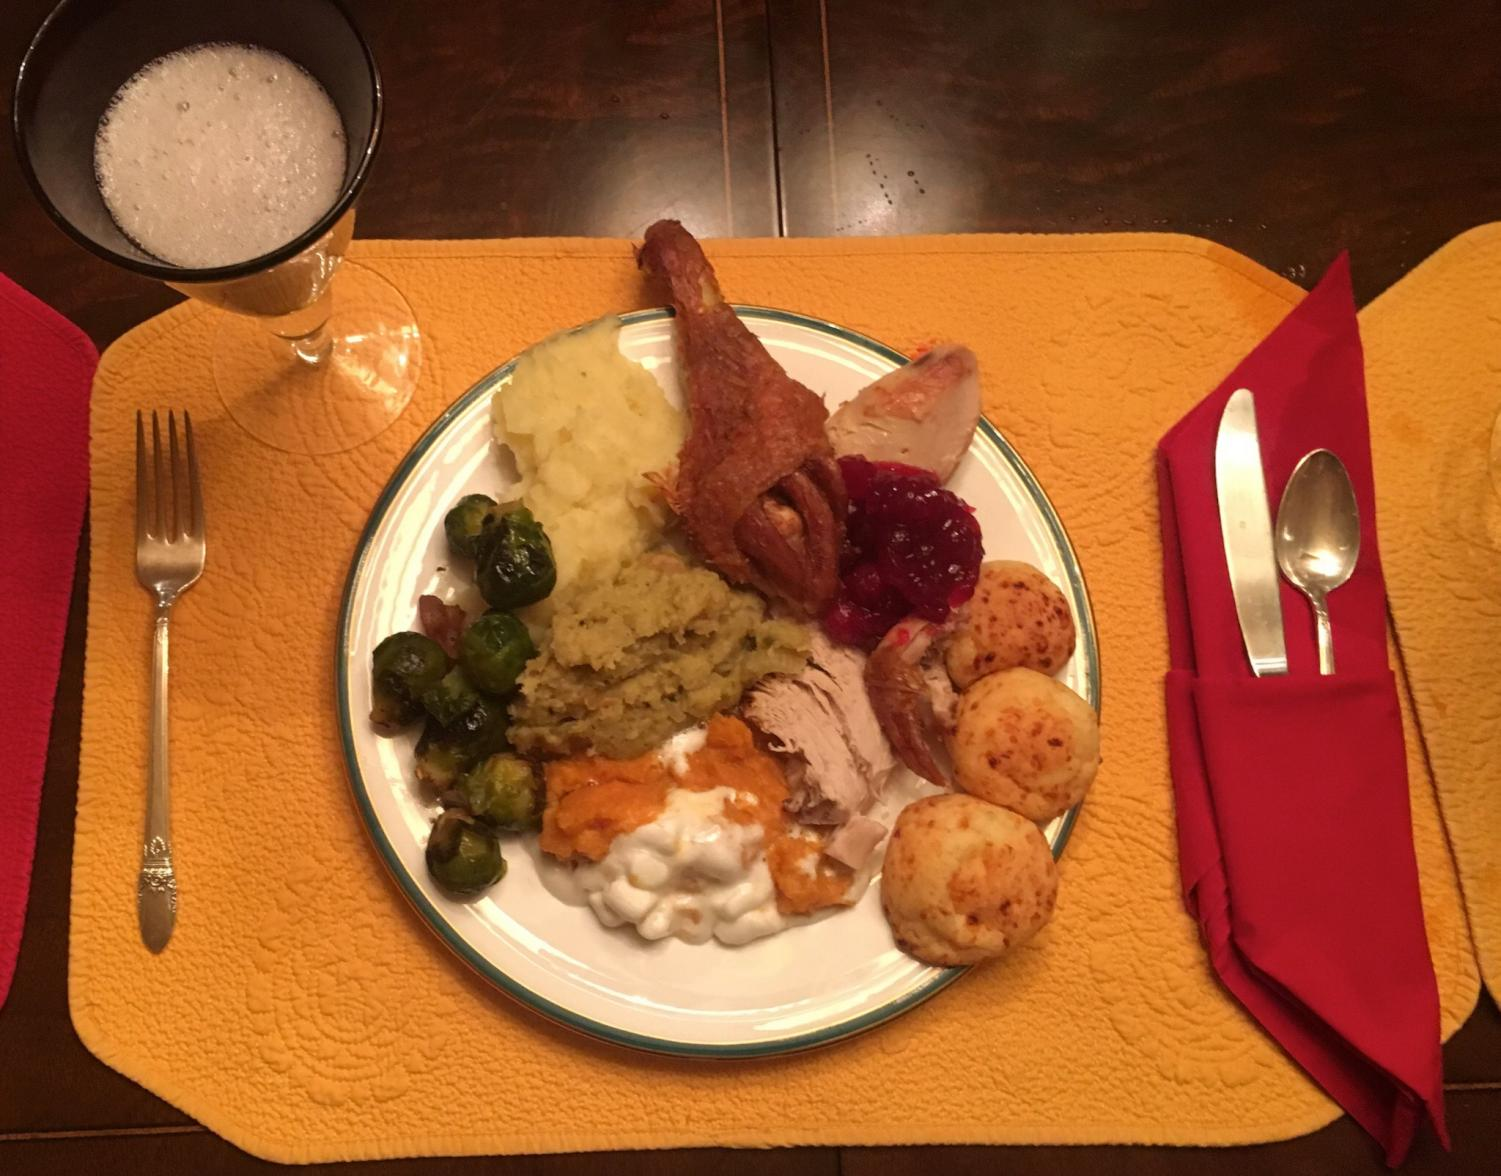 Dinner with family or friends is one of the most basic traditions many people undertake on Thanksgiving (Photo by Colleen Sherry).